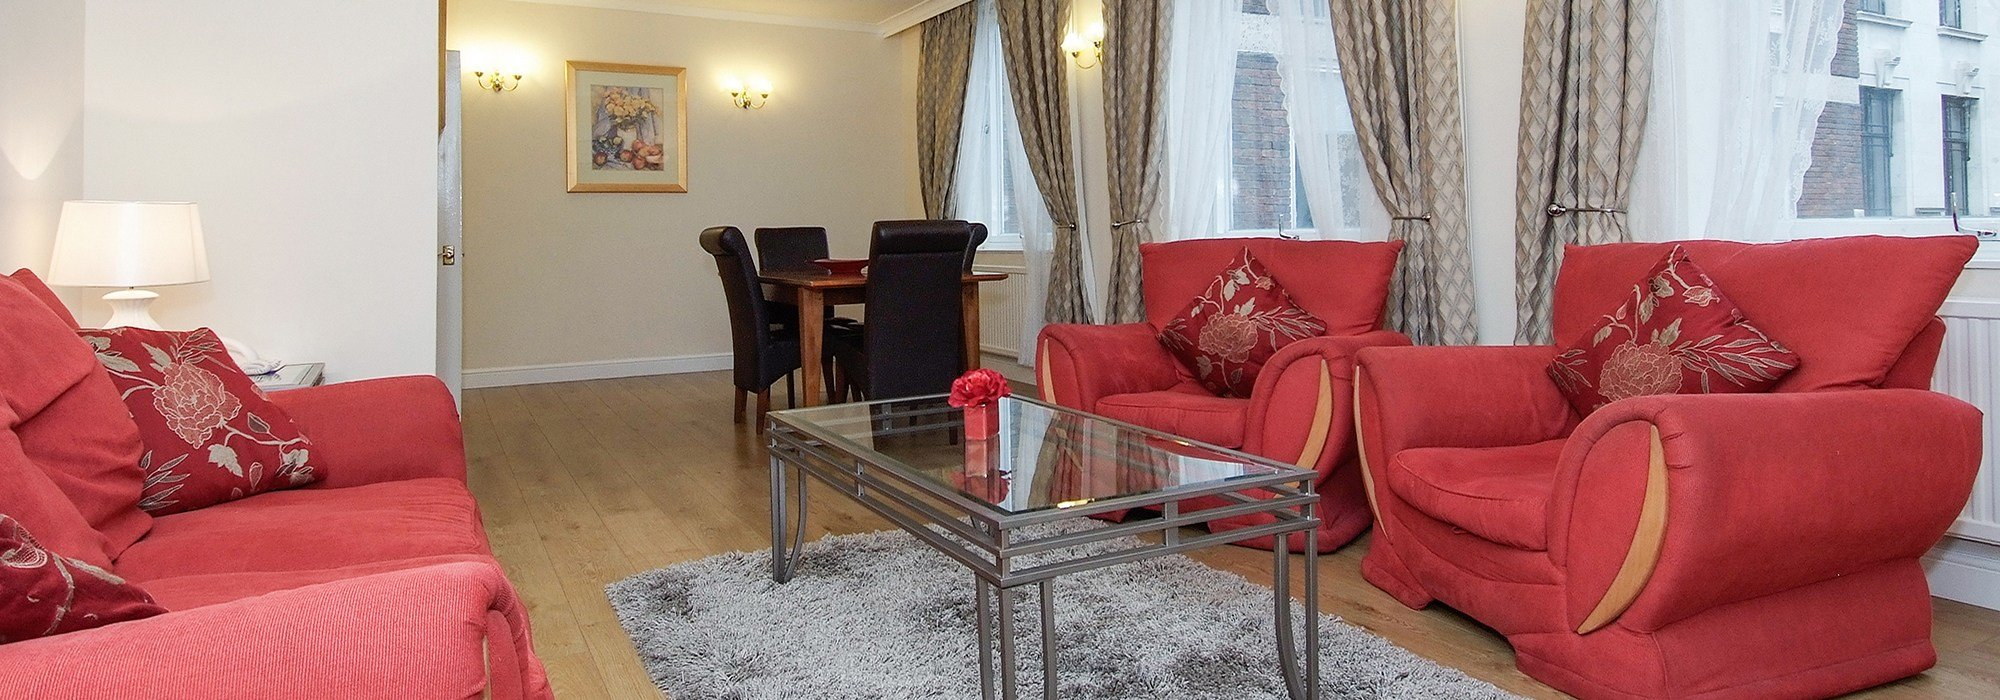 Best Short Let London Apartments For Rent Holiday Rentals Uk With Pictures